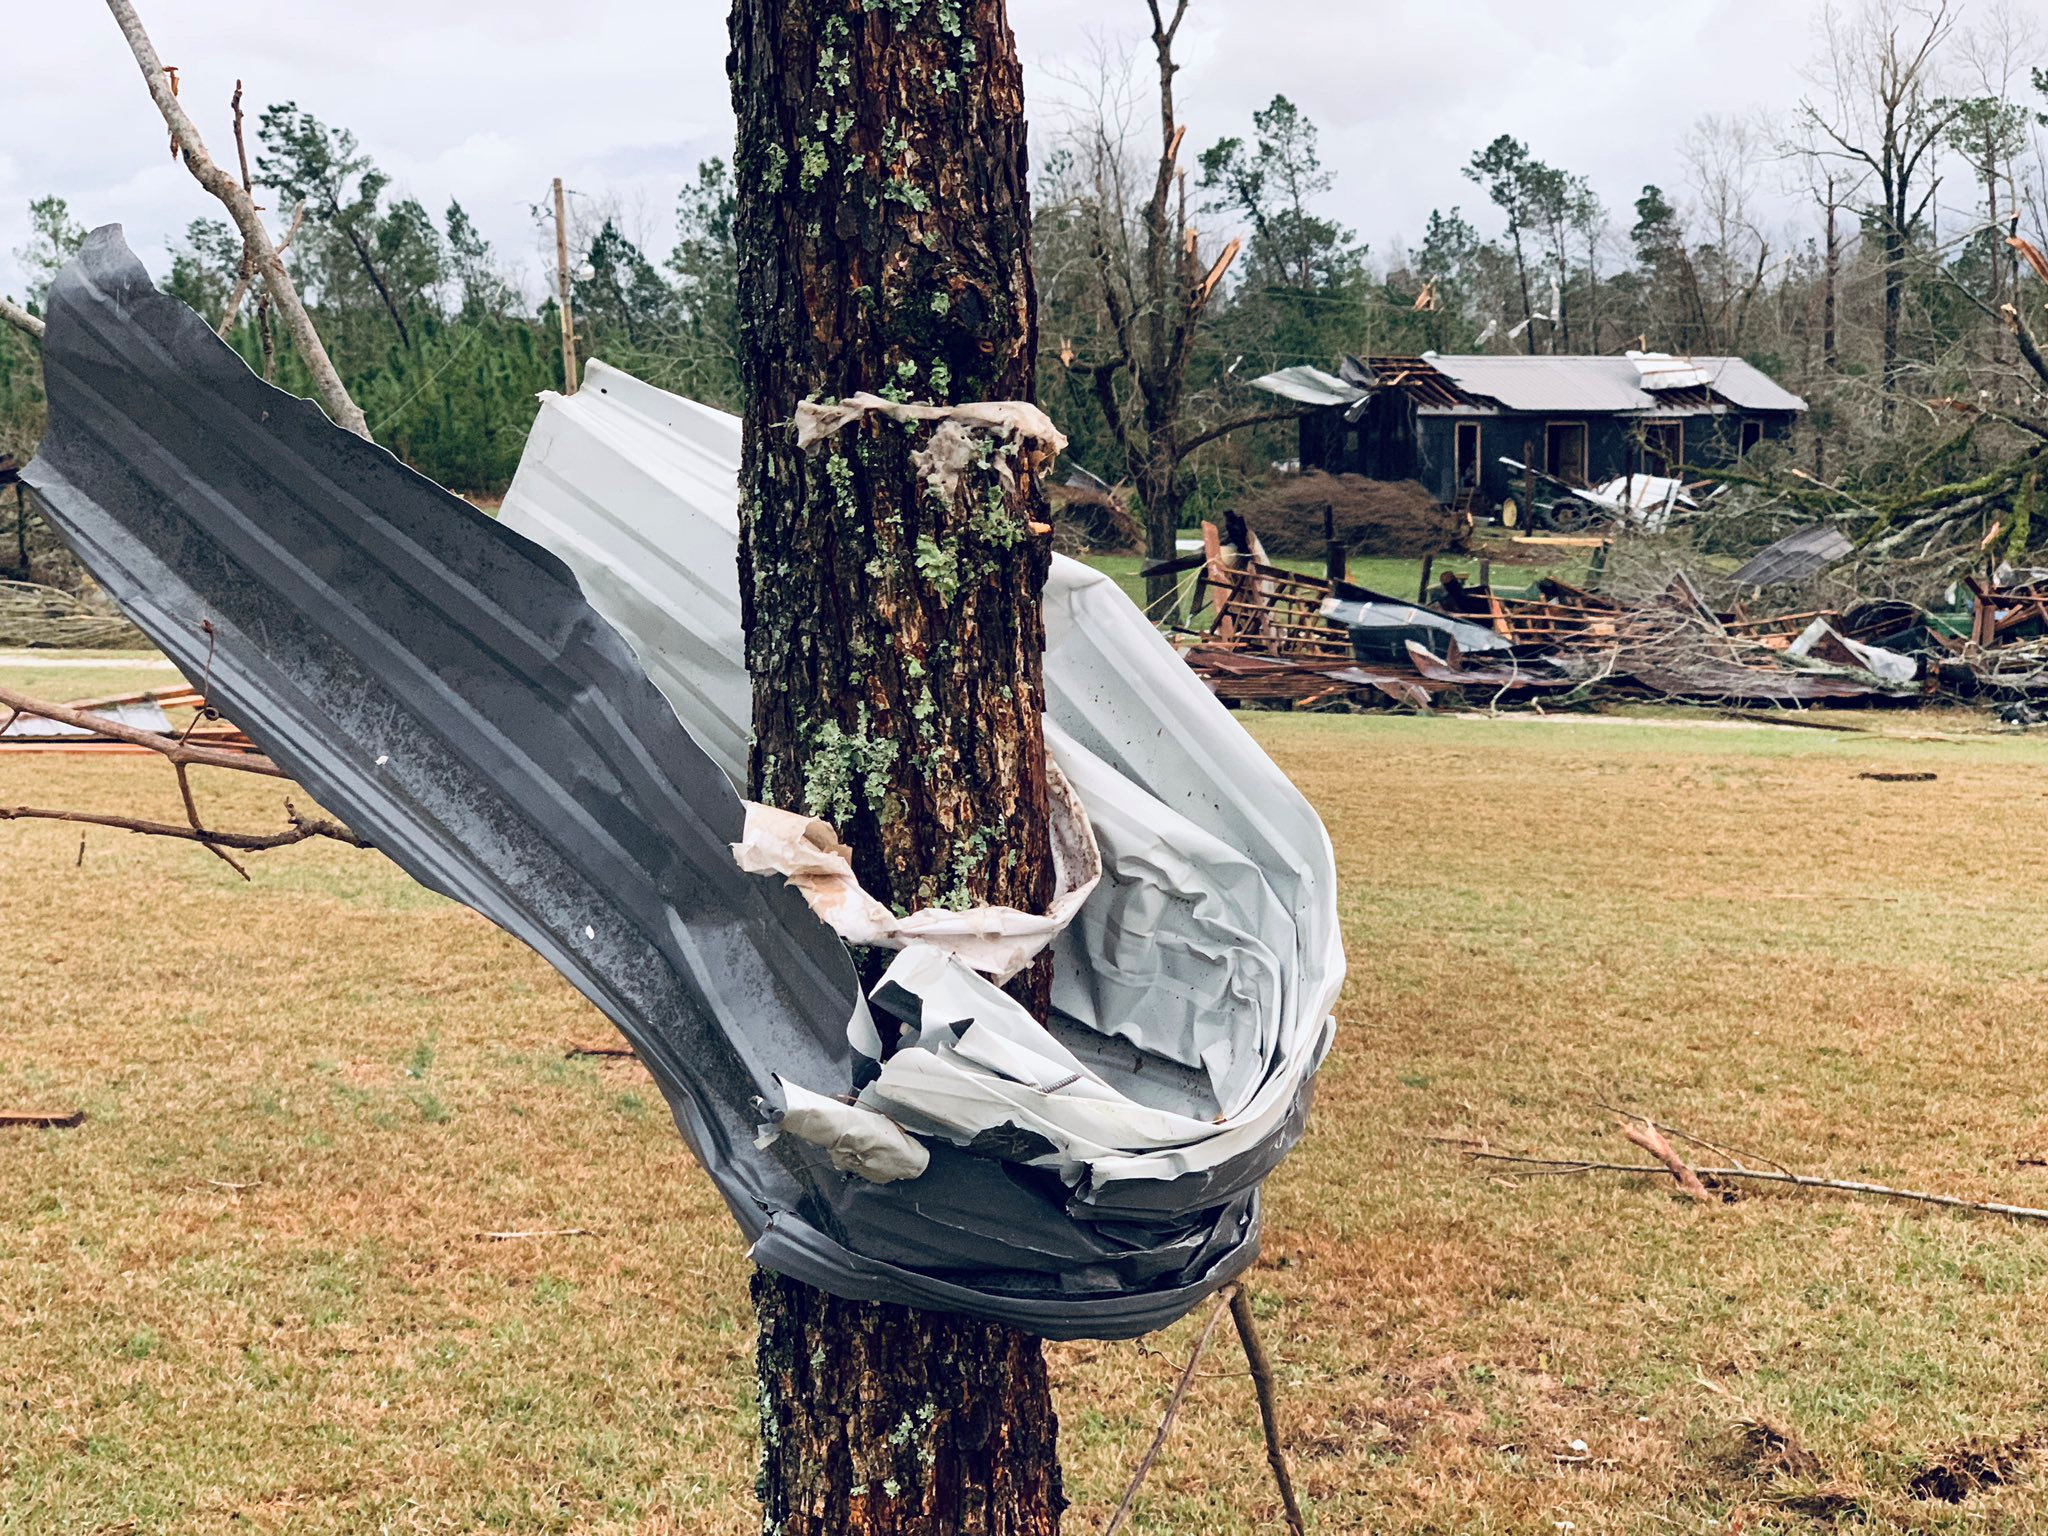 A piece of metal is seen wrapped around a tree following tornadoes in Beauregard, Alabama, in this March 3 still image obtain